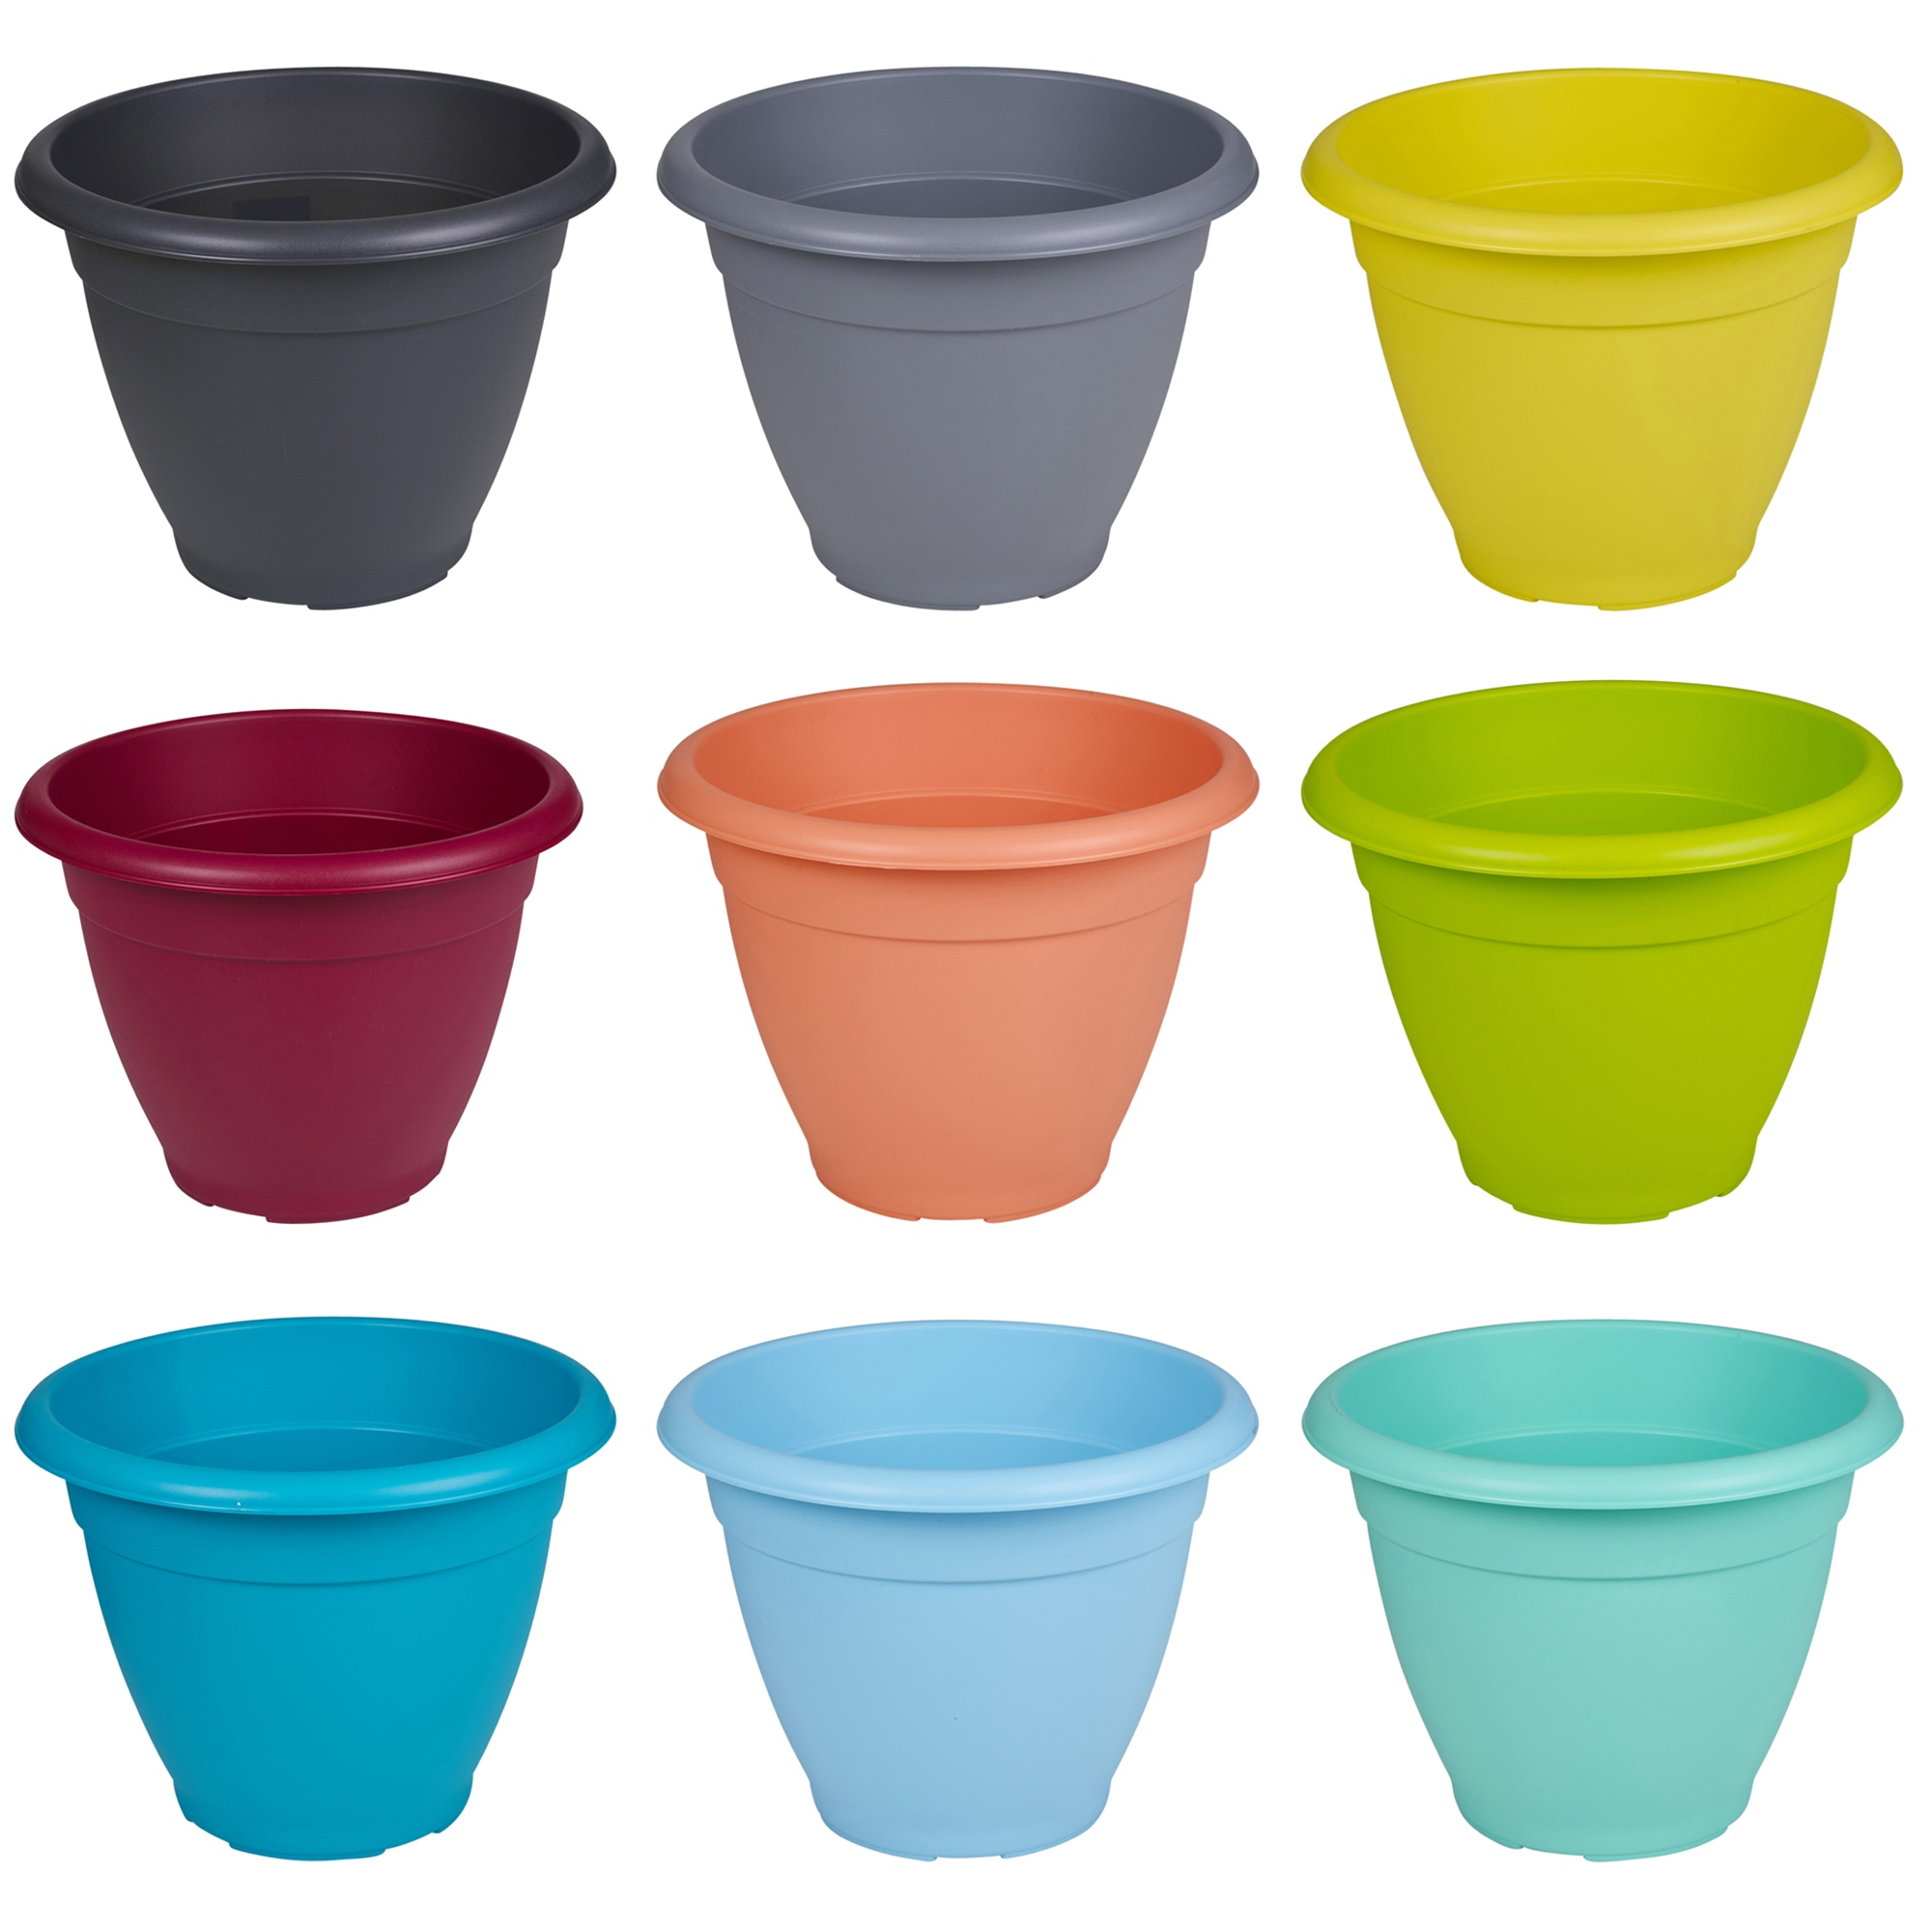 plastique plante pot de fleur jardin support pots herbe couleurs assorties neuf ebay. Black Bedroom Furniture Sets. Home Design Ideas